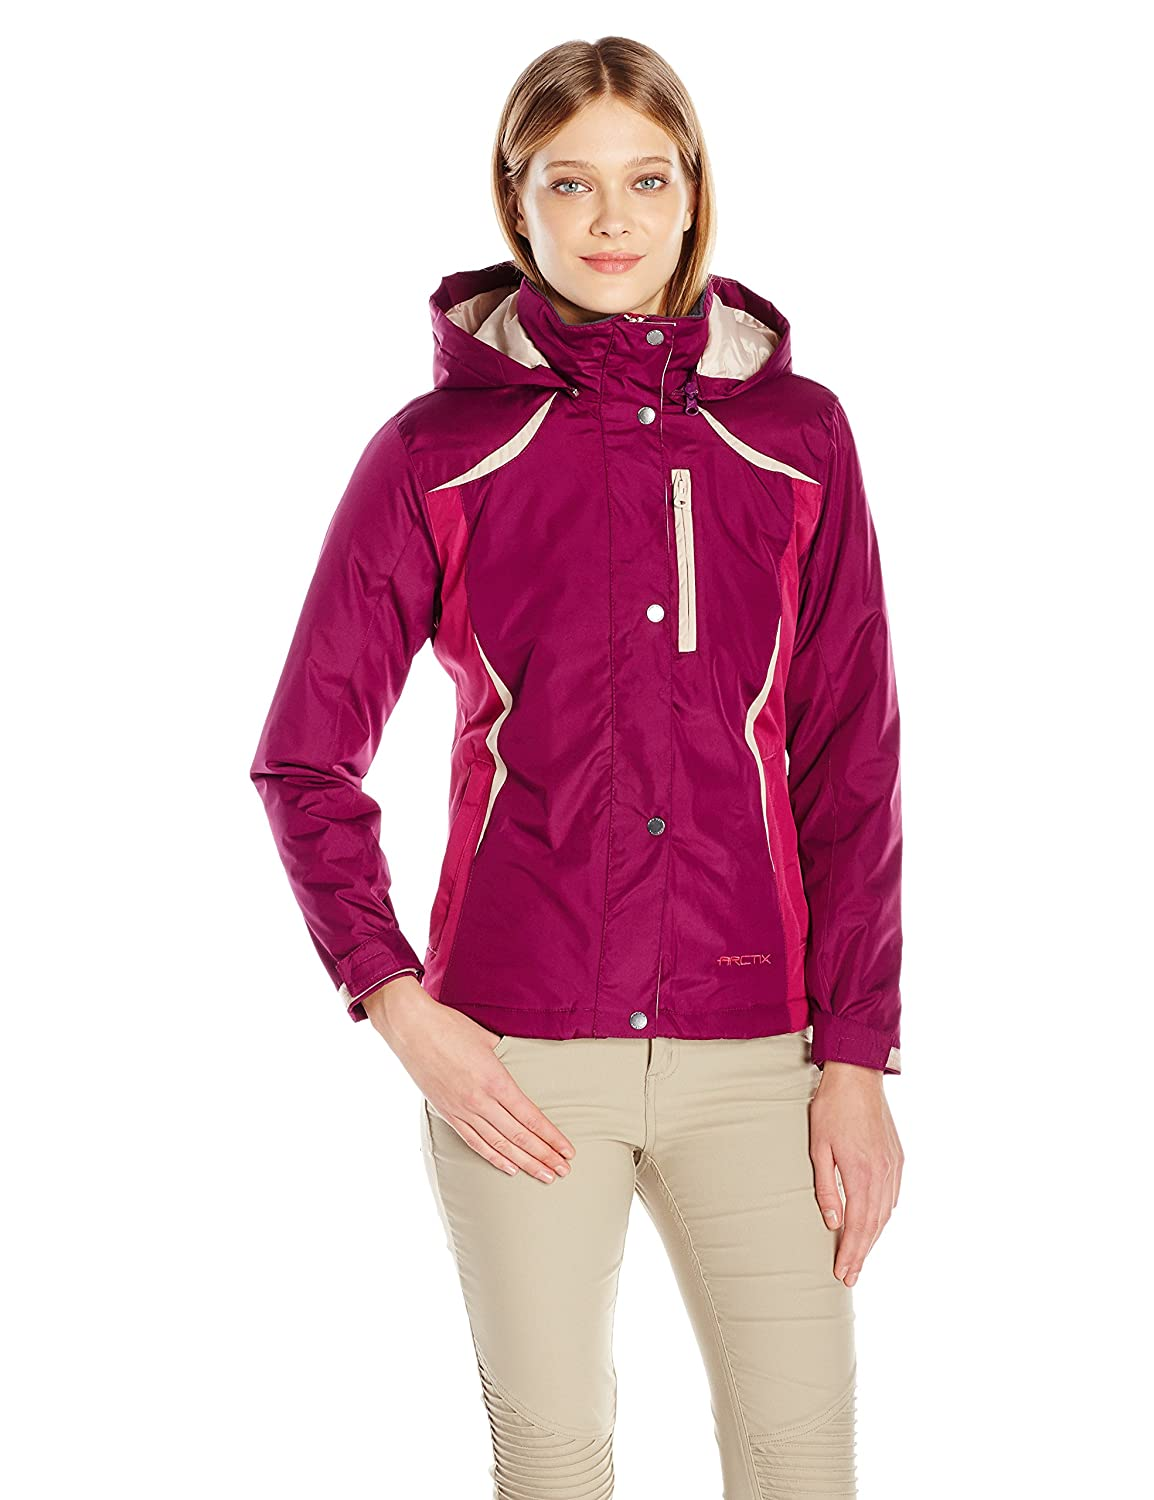 Arctix Women's Glacier Jacket 62710-88-Parent